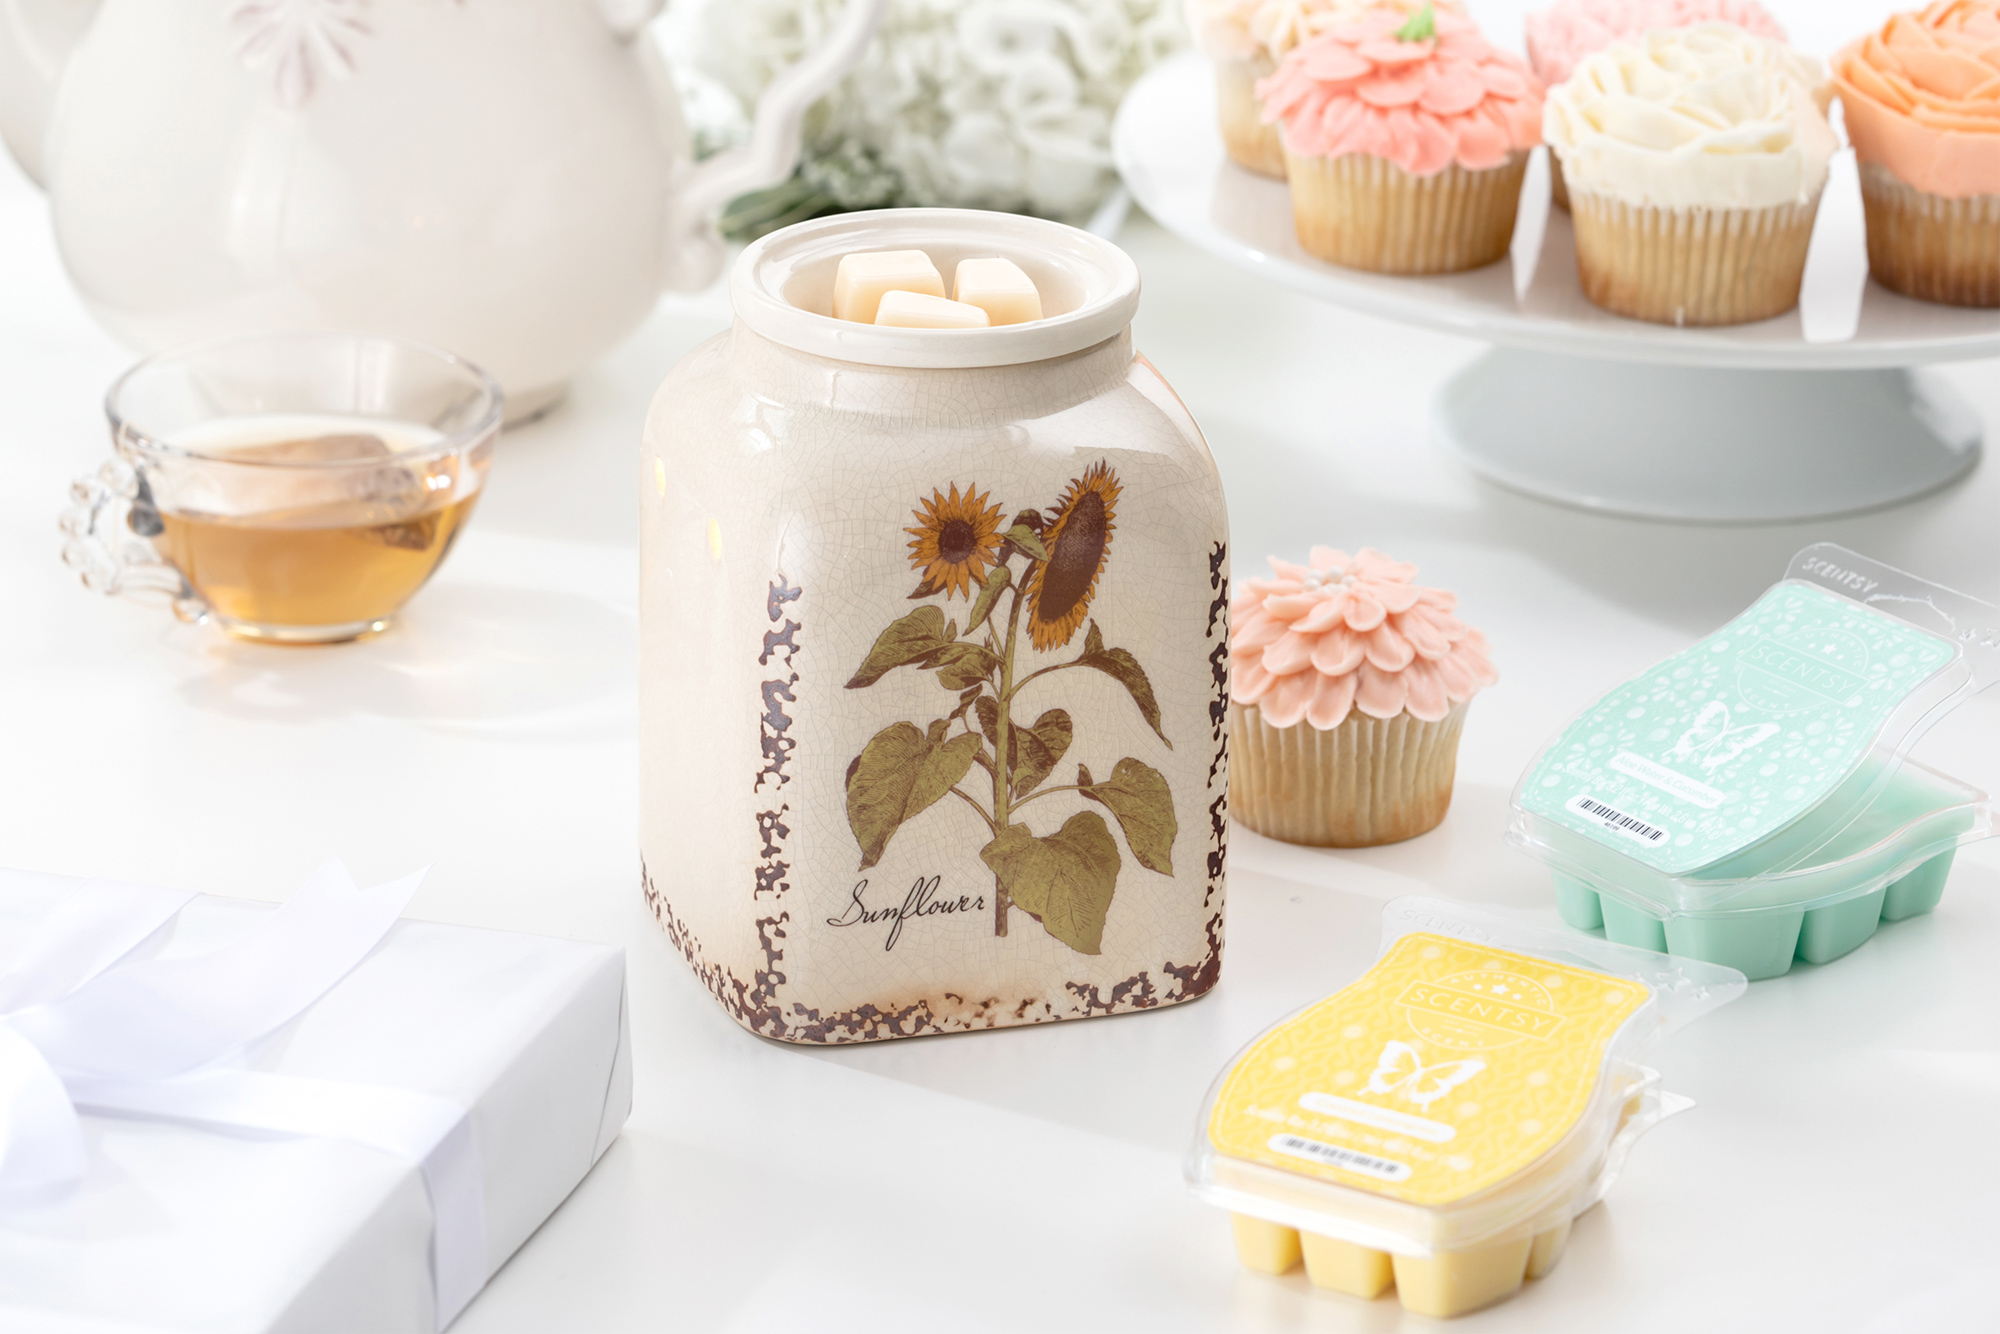 Mothers Day Products: Rustic Sunflower Warmer and fragrances